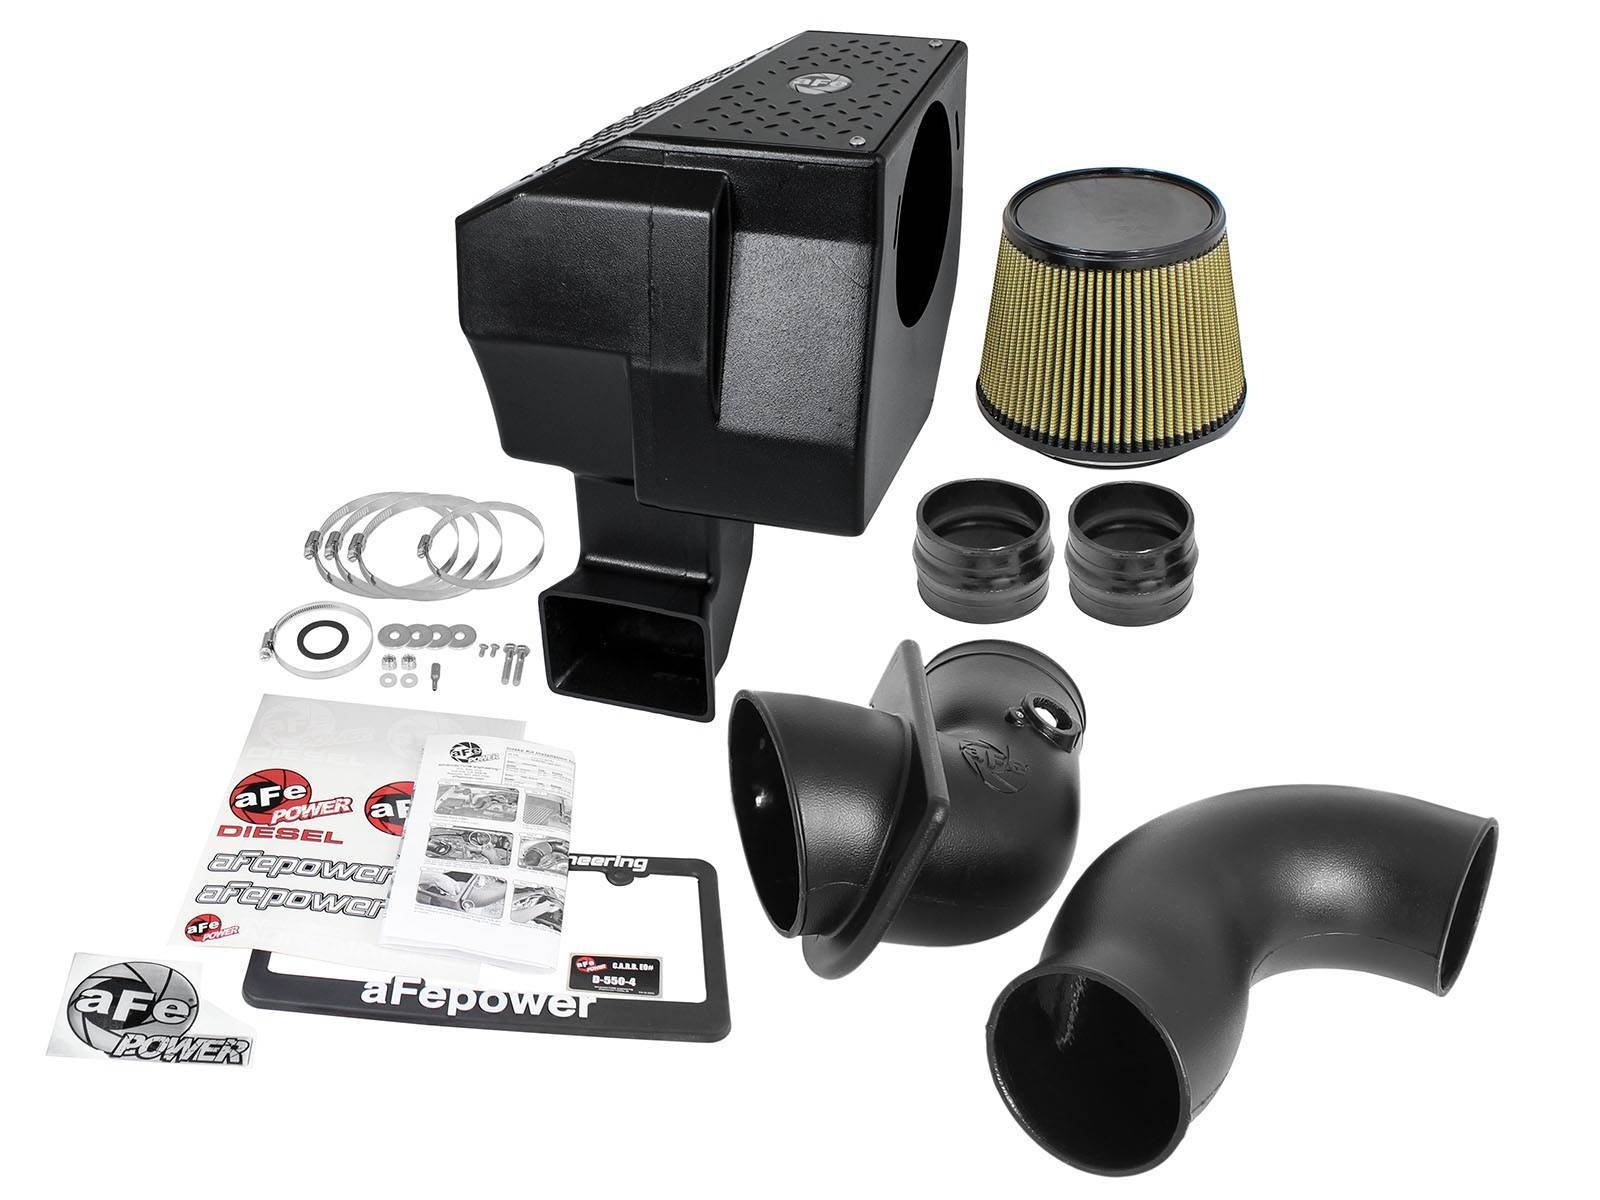 75-80882-0 - aFE Pro Guard 7 Type Si Performance Cold Air Intake System for 2006-2007 GMC/Chevy Duramax 6.6L LBZ diesels